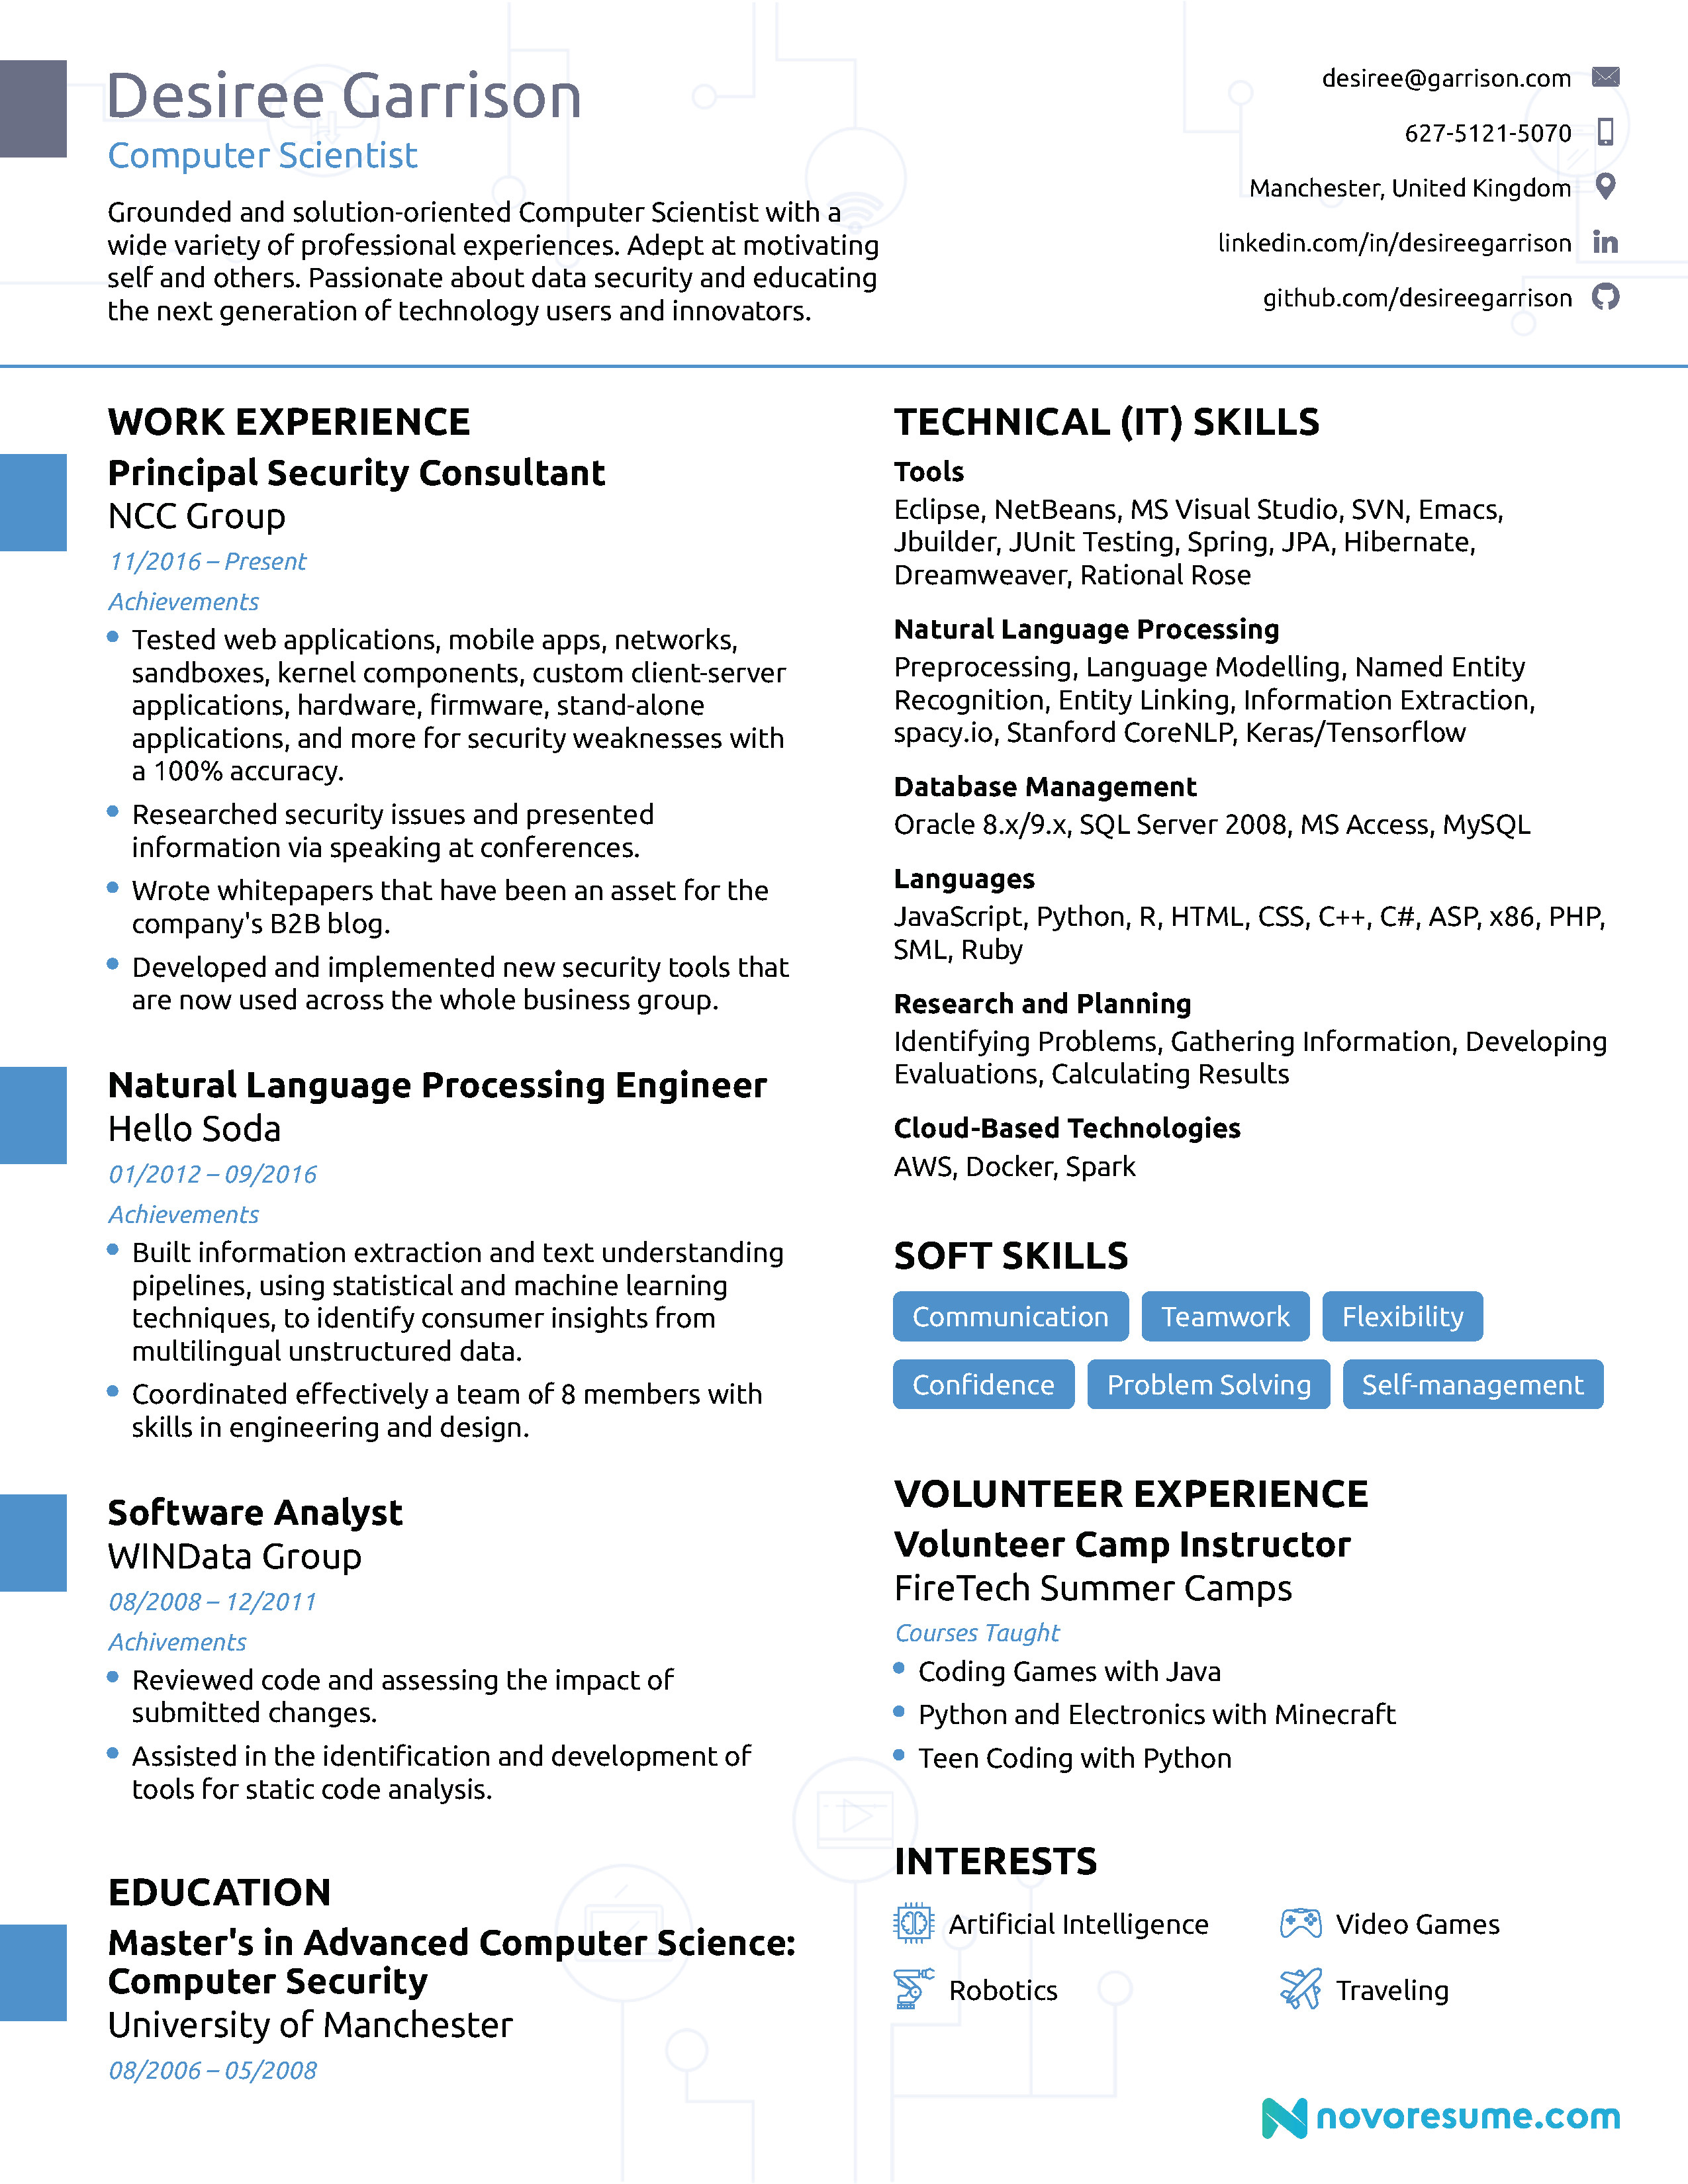 Sample Computer Science Resume Puter Science Resume [2019] Guide & Examples